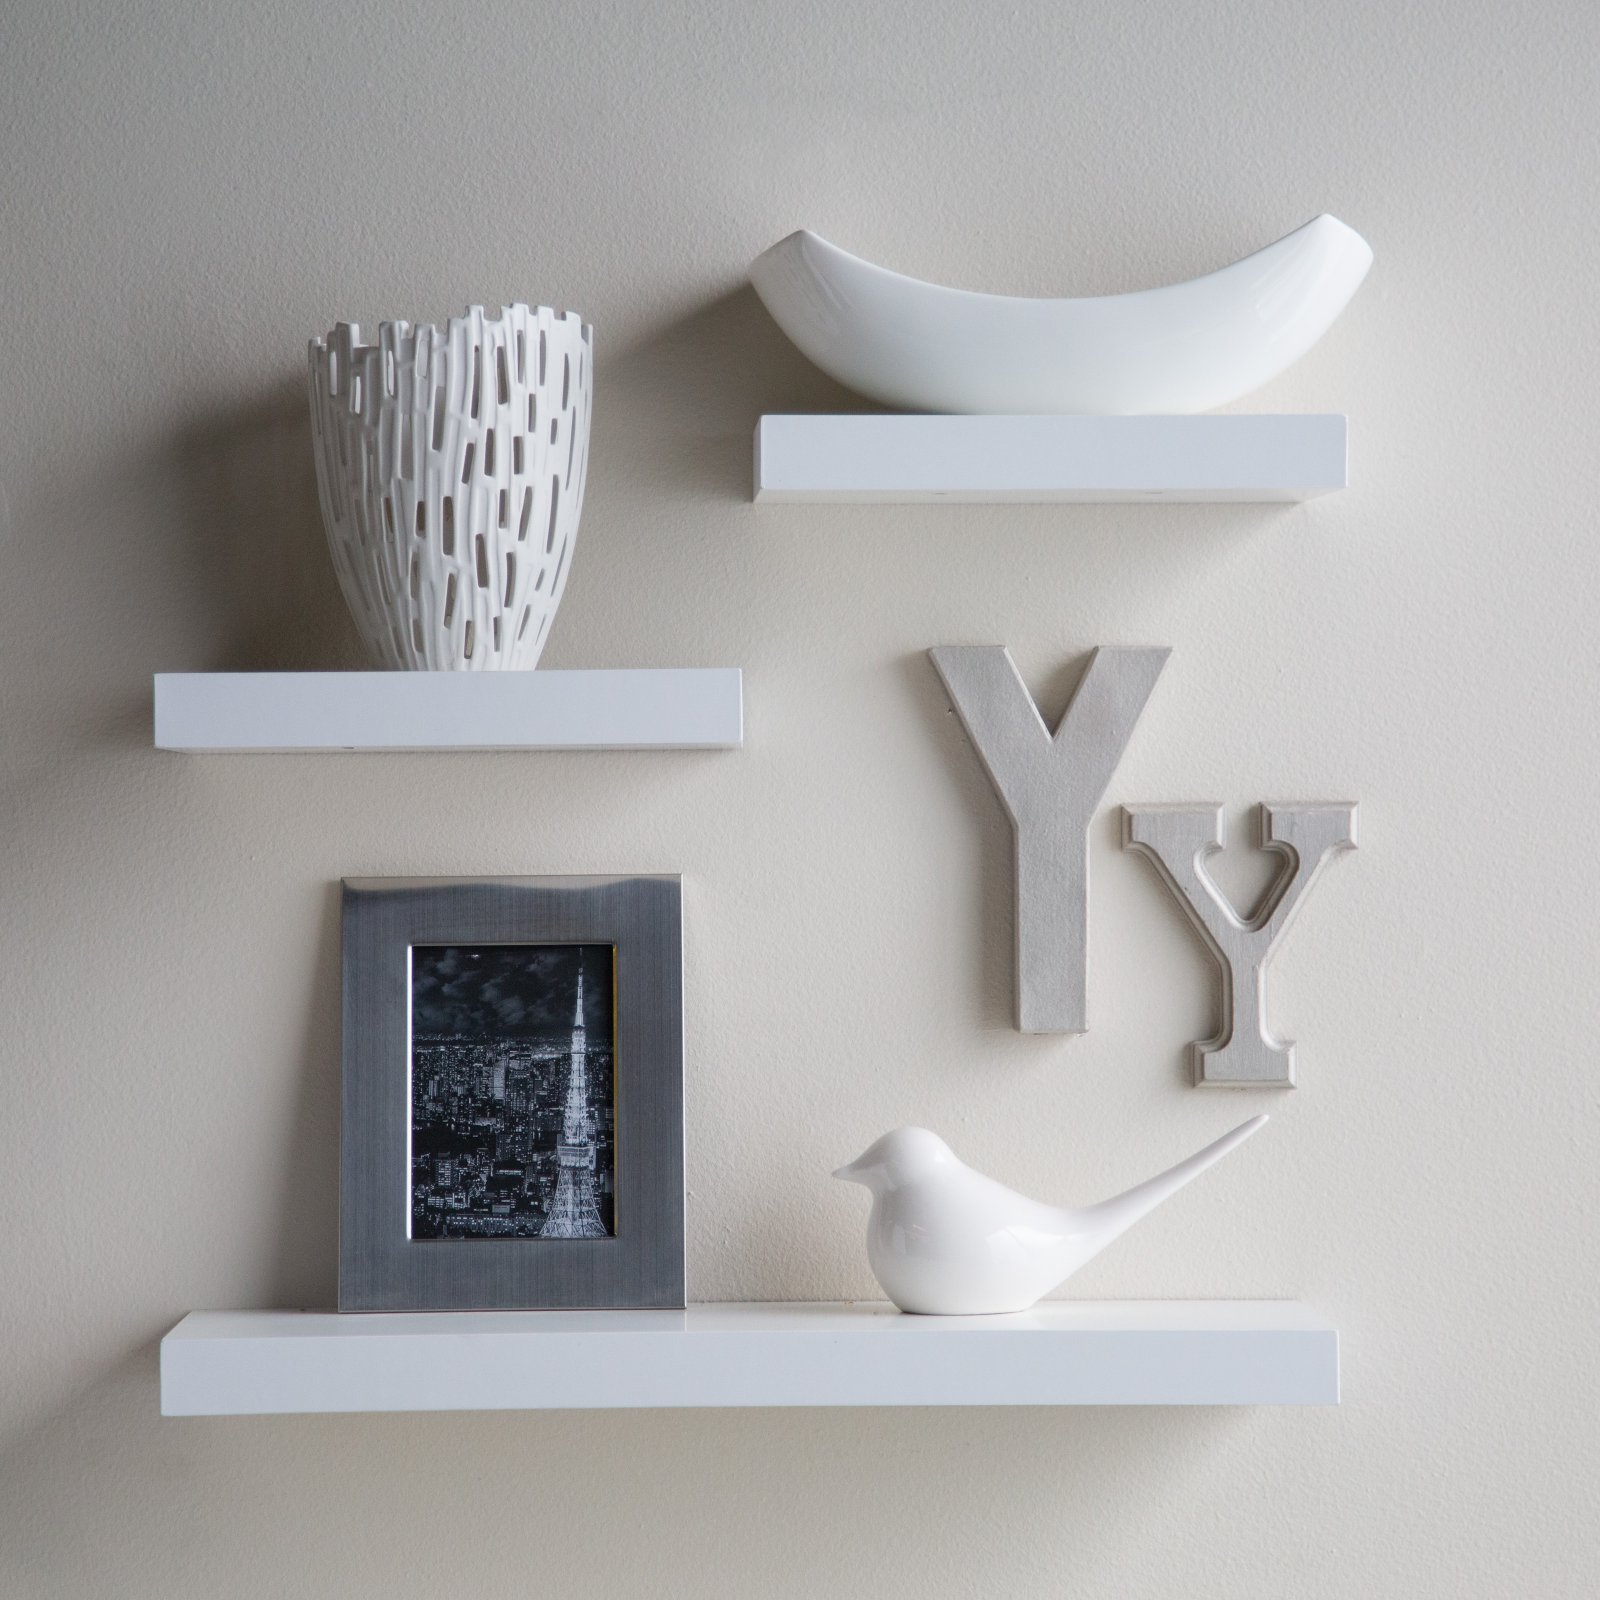 finley home hudson easy mount floating shelves your way master masters wire closet shelf brackets cast iron corner wall hung coat hooks media bench furniture distressed white wood